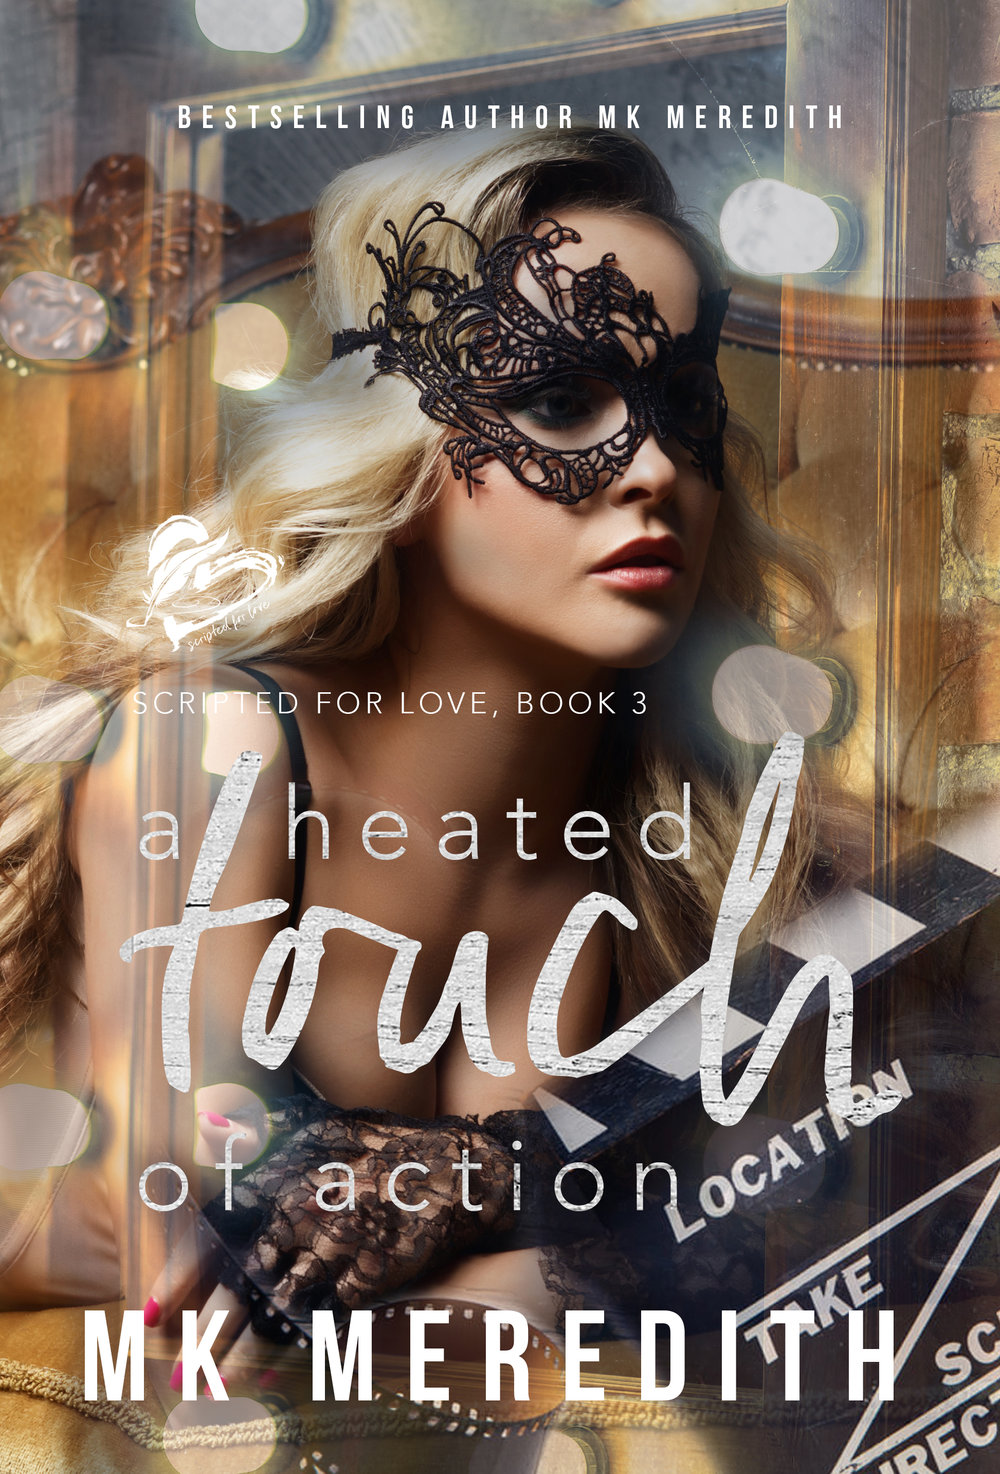 A Heated Touch of Action MK Meredith Kindle.jpg